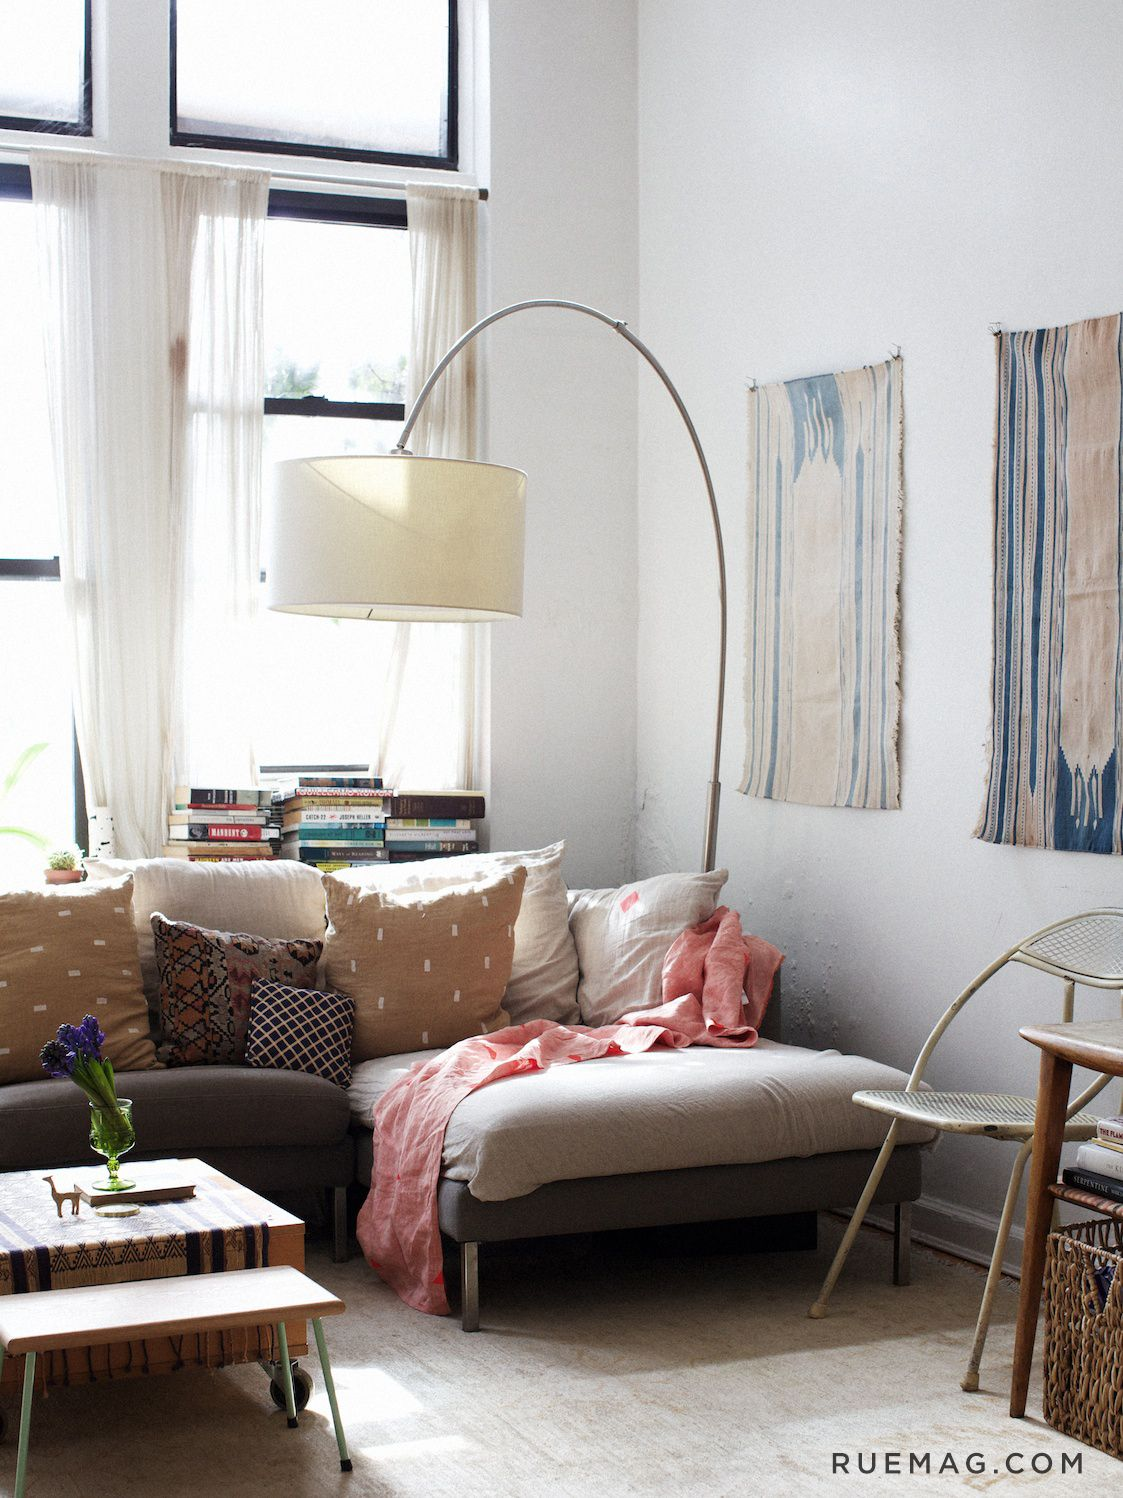 Apartment Interior With 4 Rooms: Four Patriotic Rooms For The Fourth